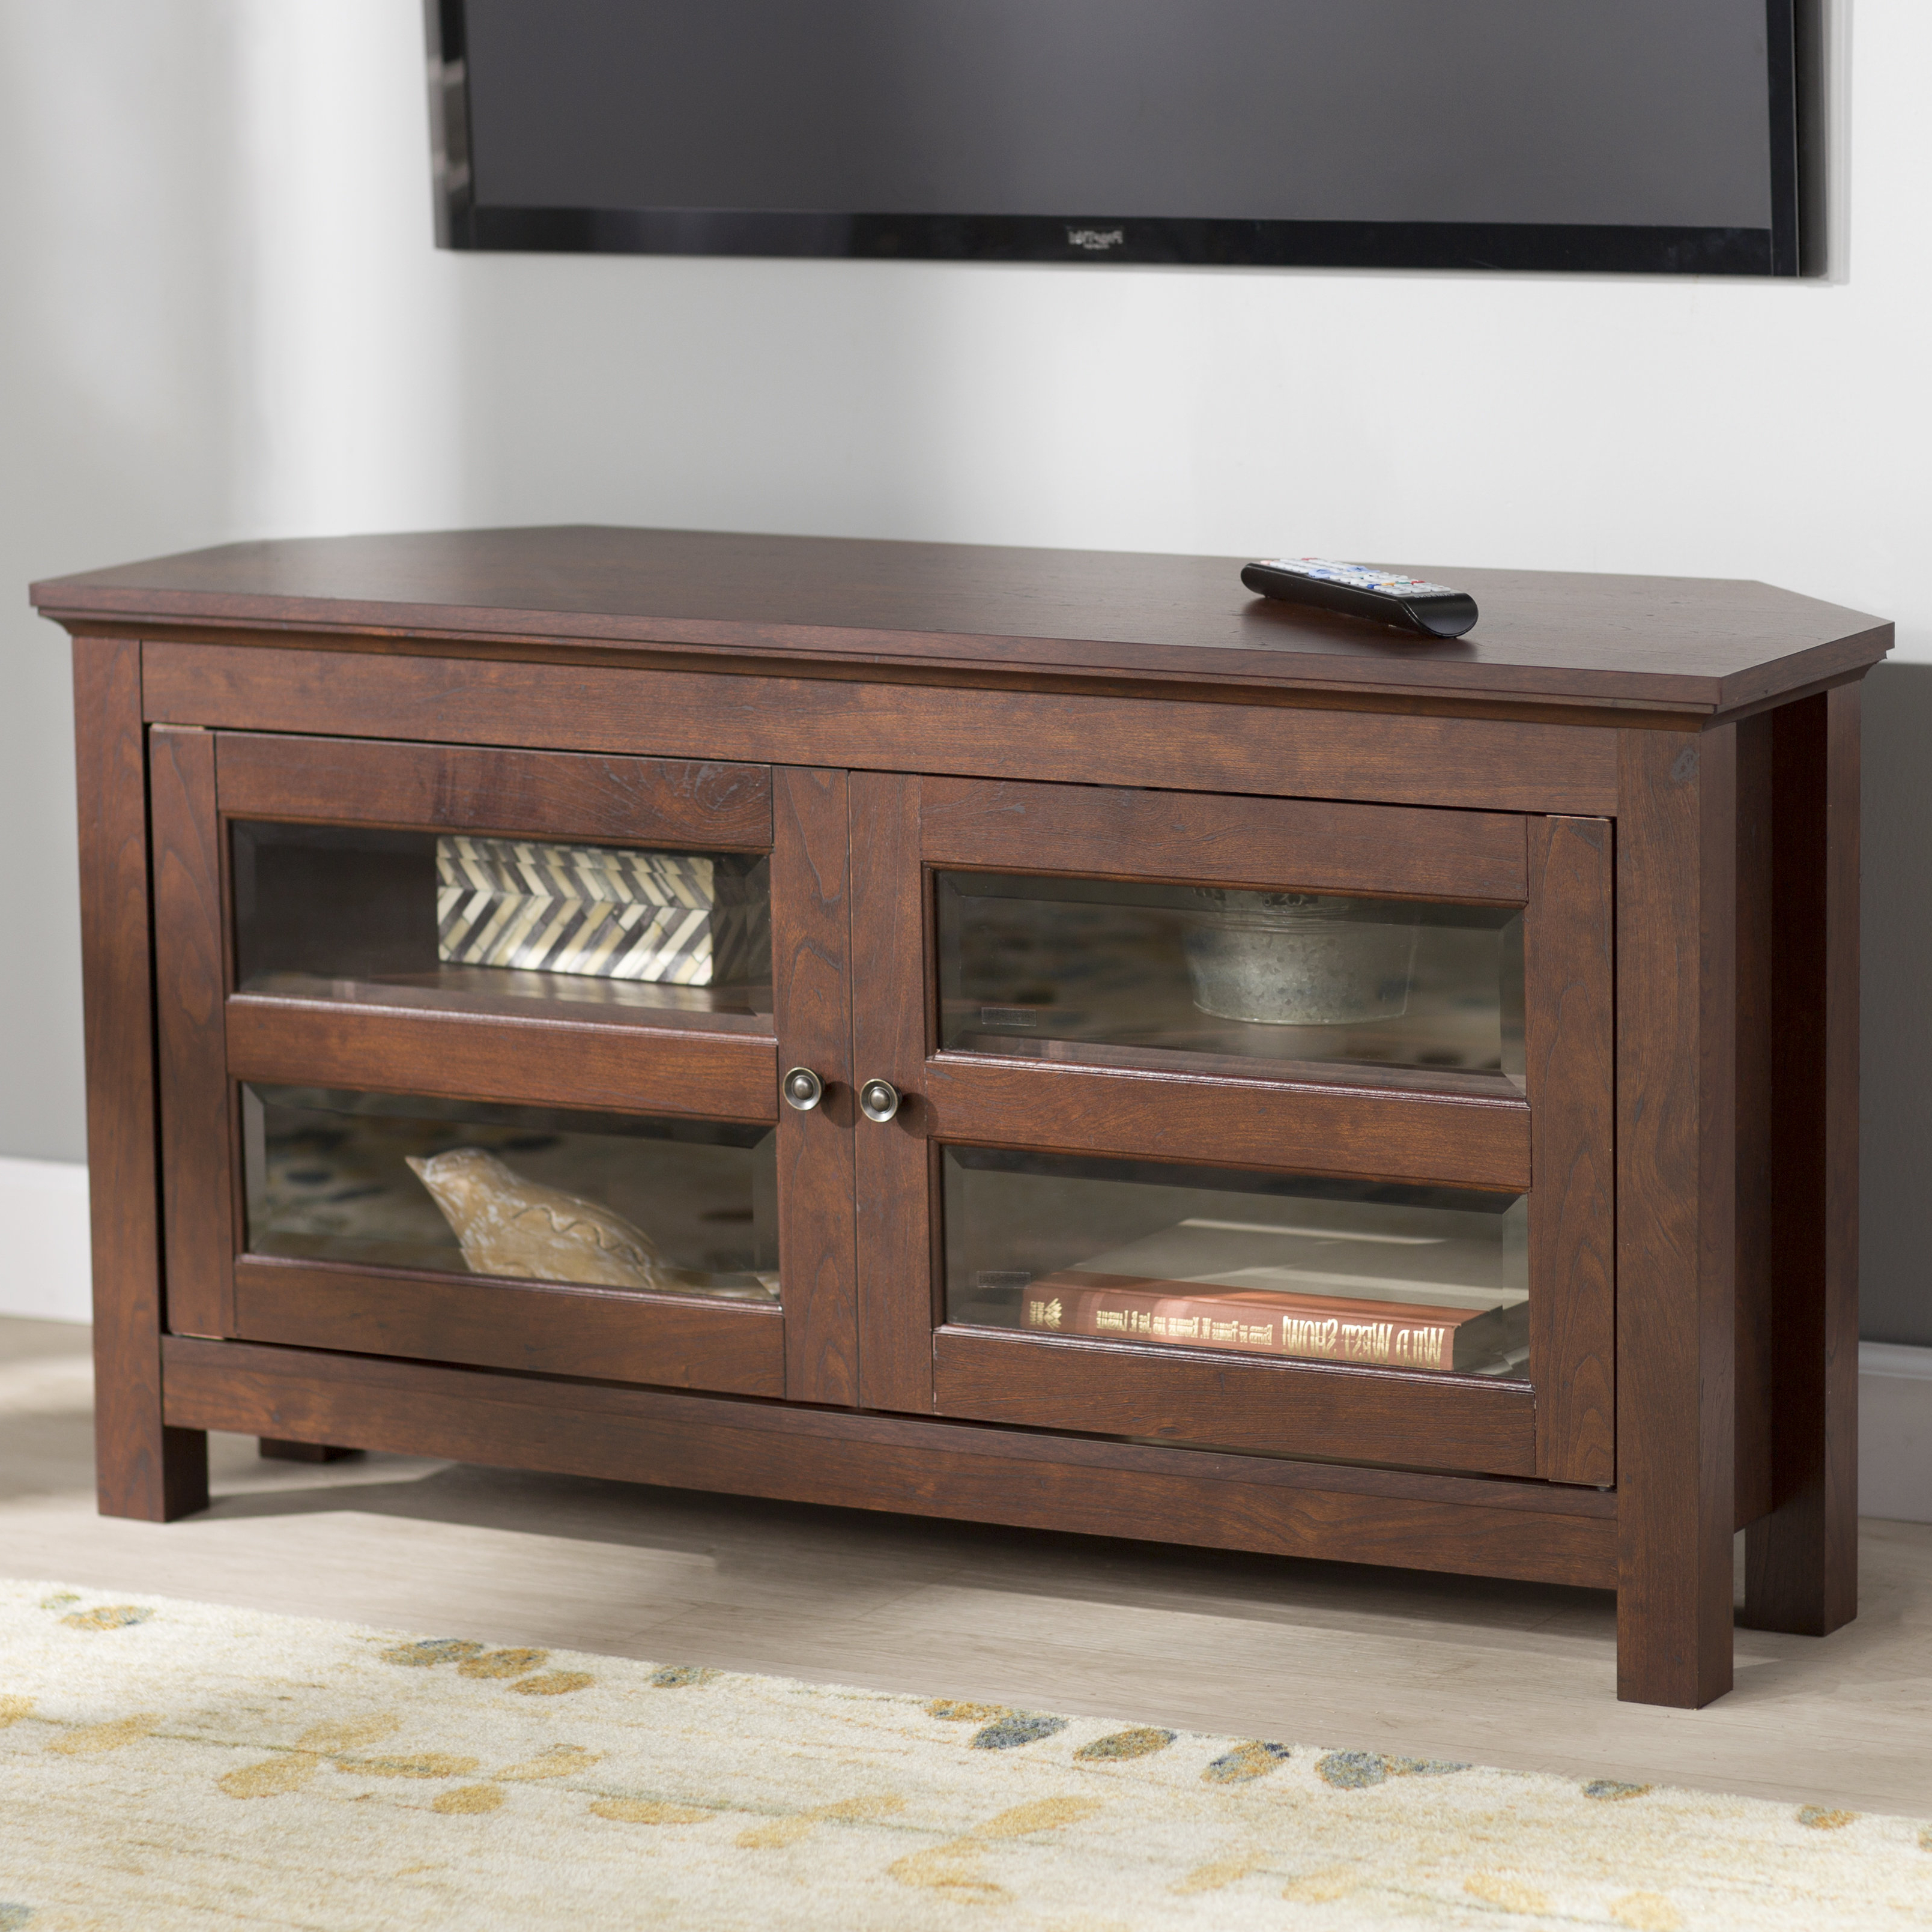 72 Inch Tv Stand (View 3 of 20)